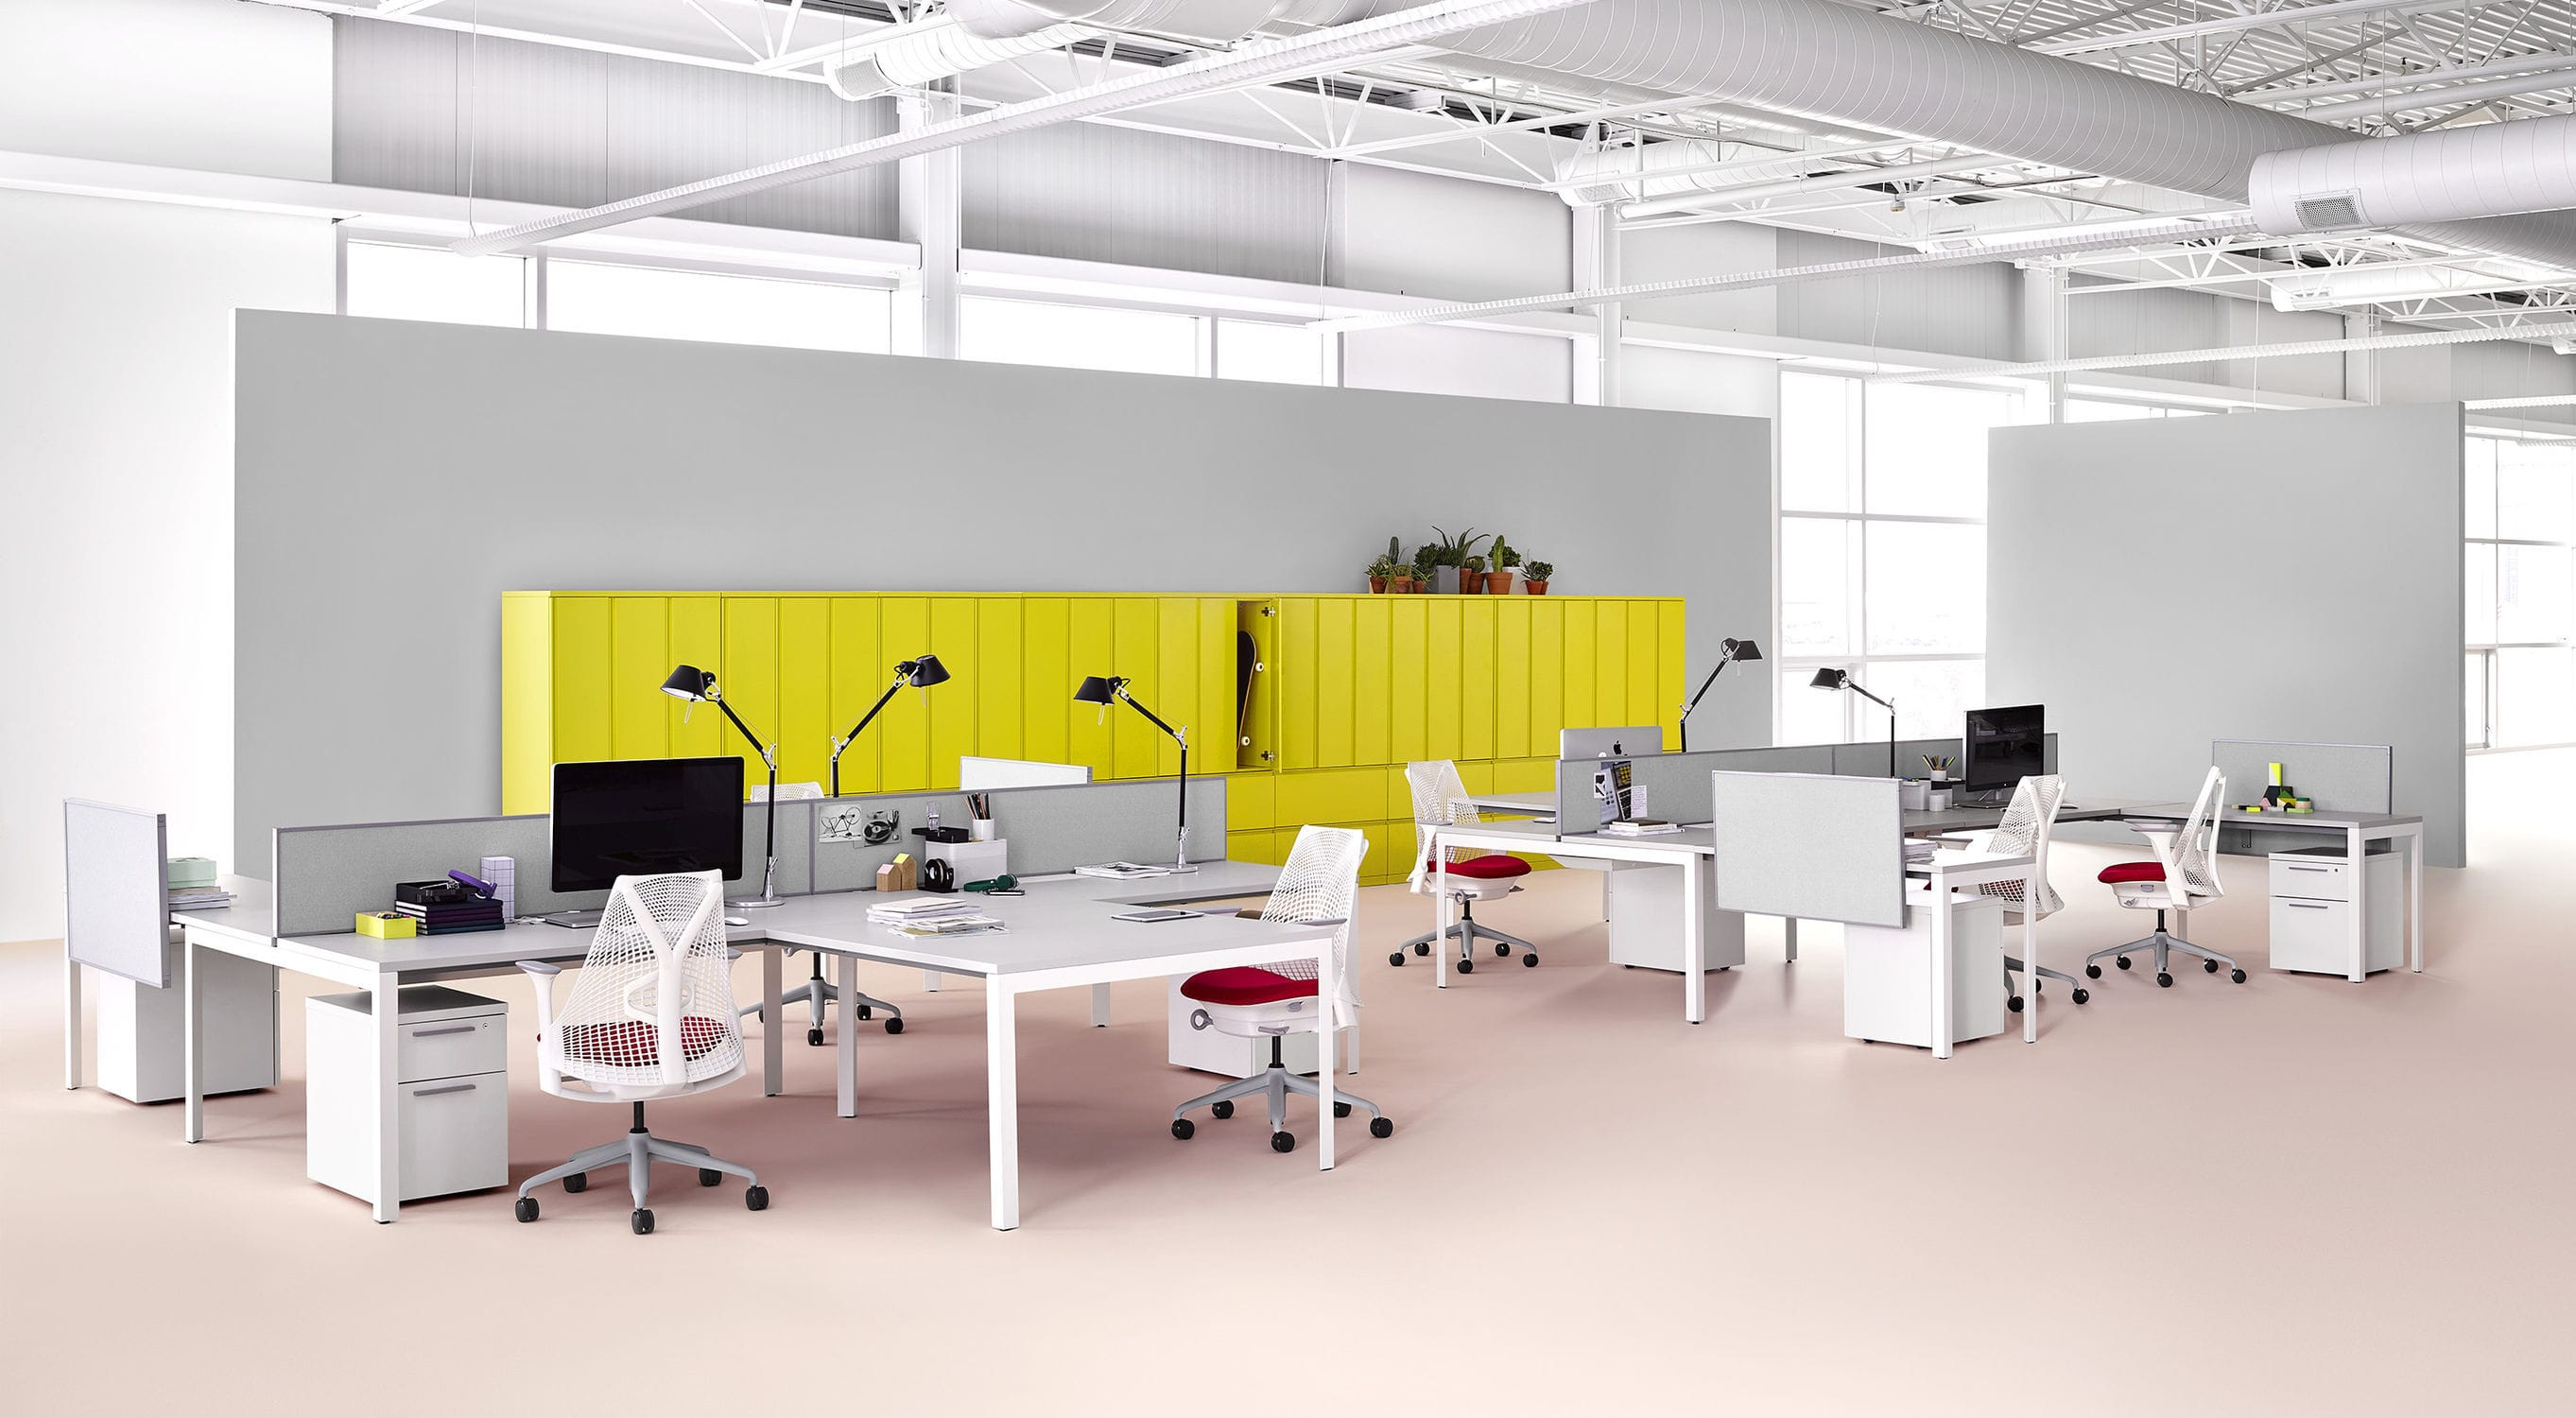 Workstation Desk Wood Veneer Laminate Metal LAYOUT STUDIO Herman Miller Europe